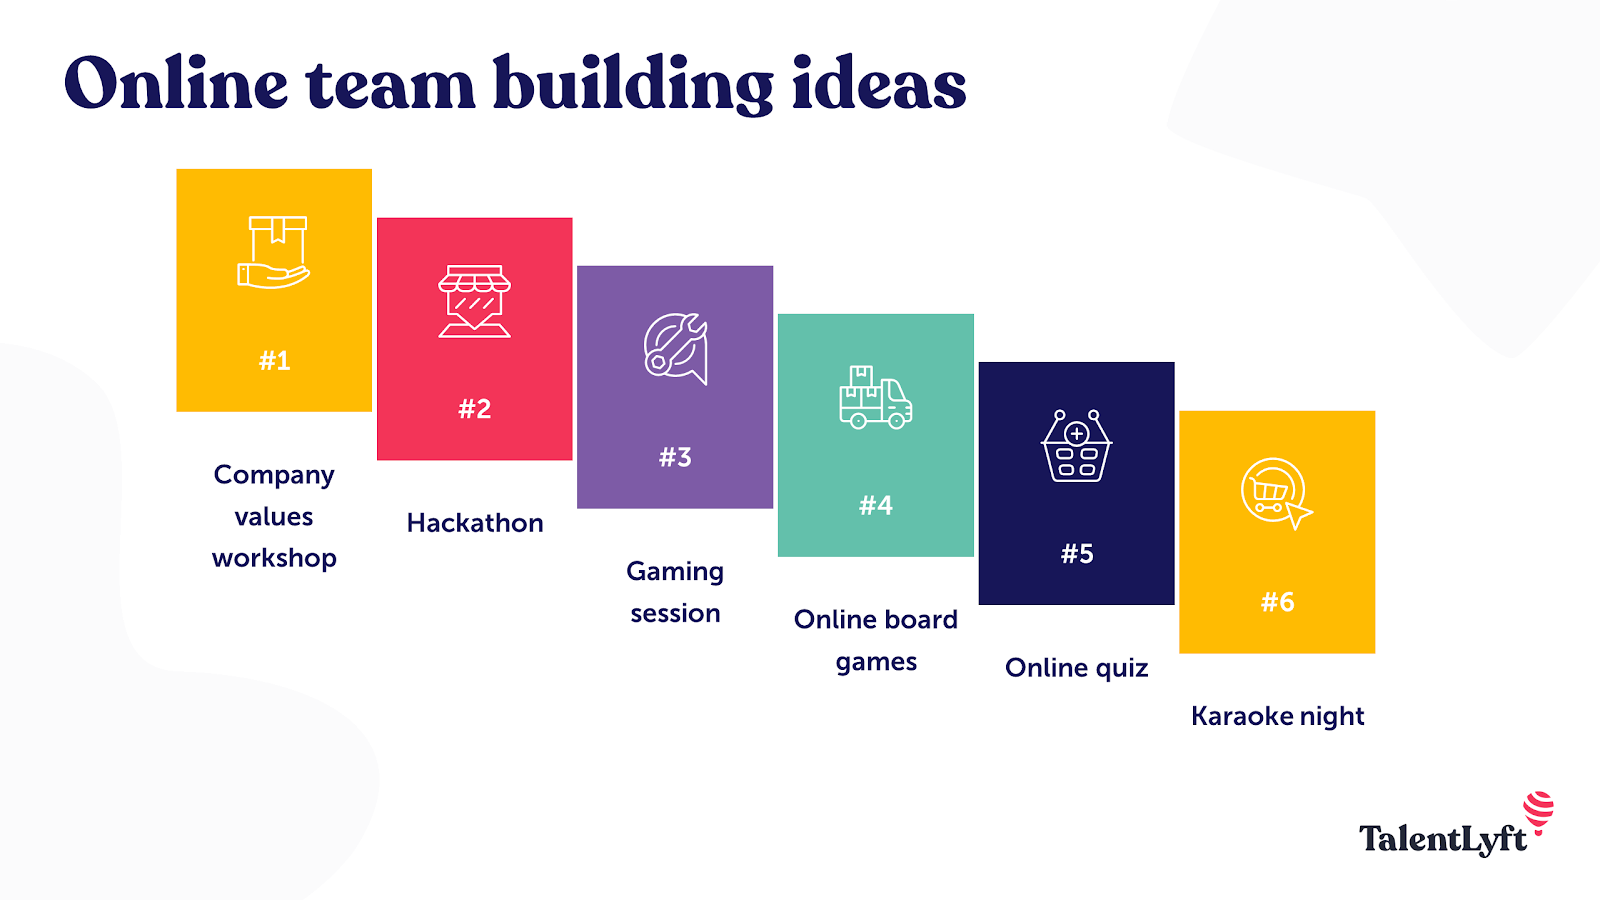 Online team building ideas